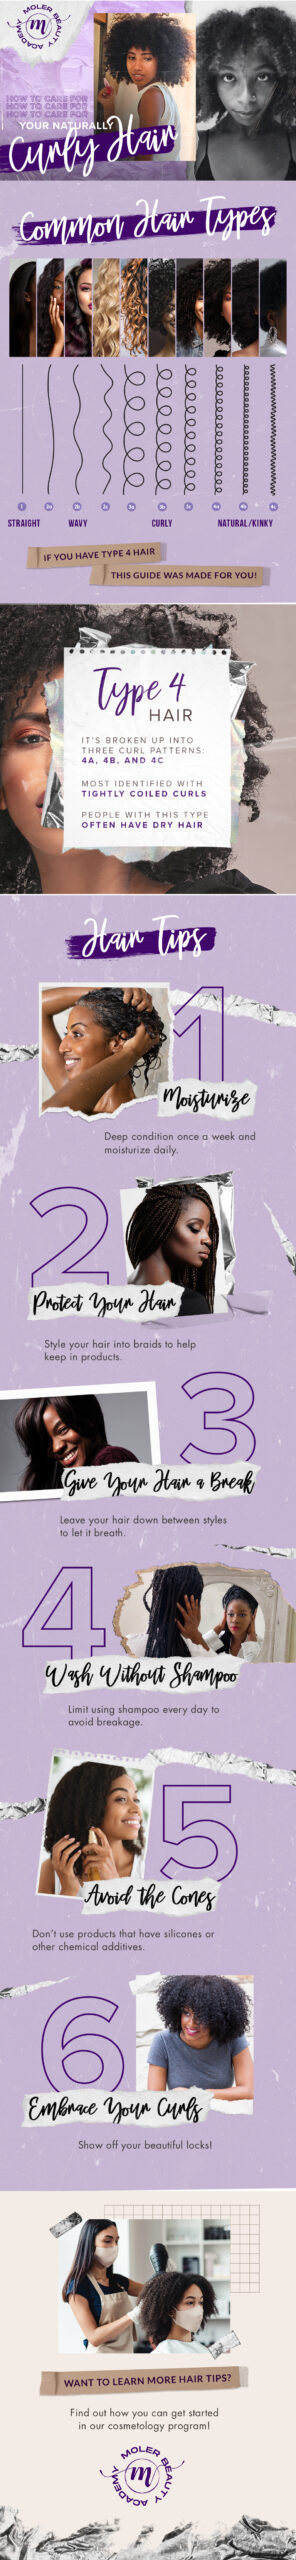 inforgraphic on how to care for natural hair